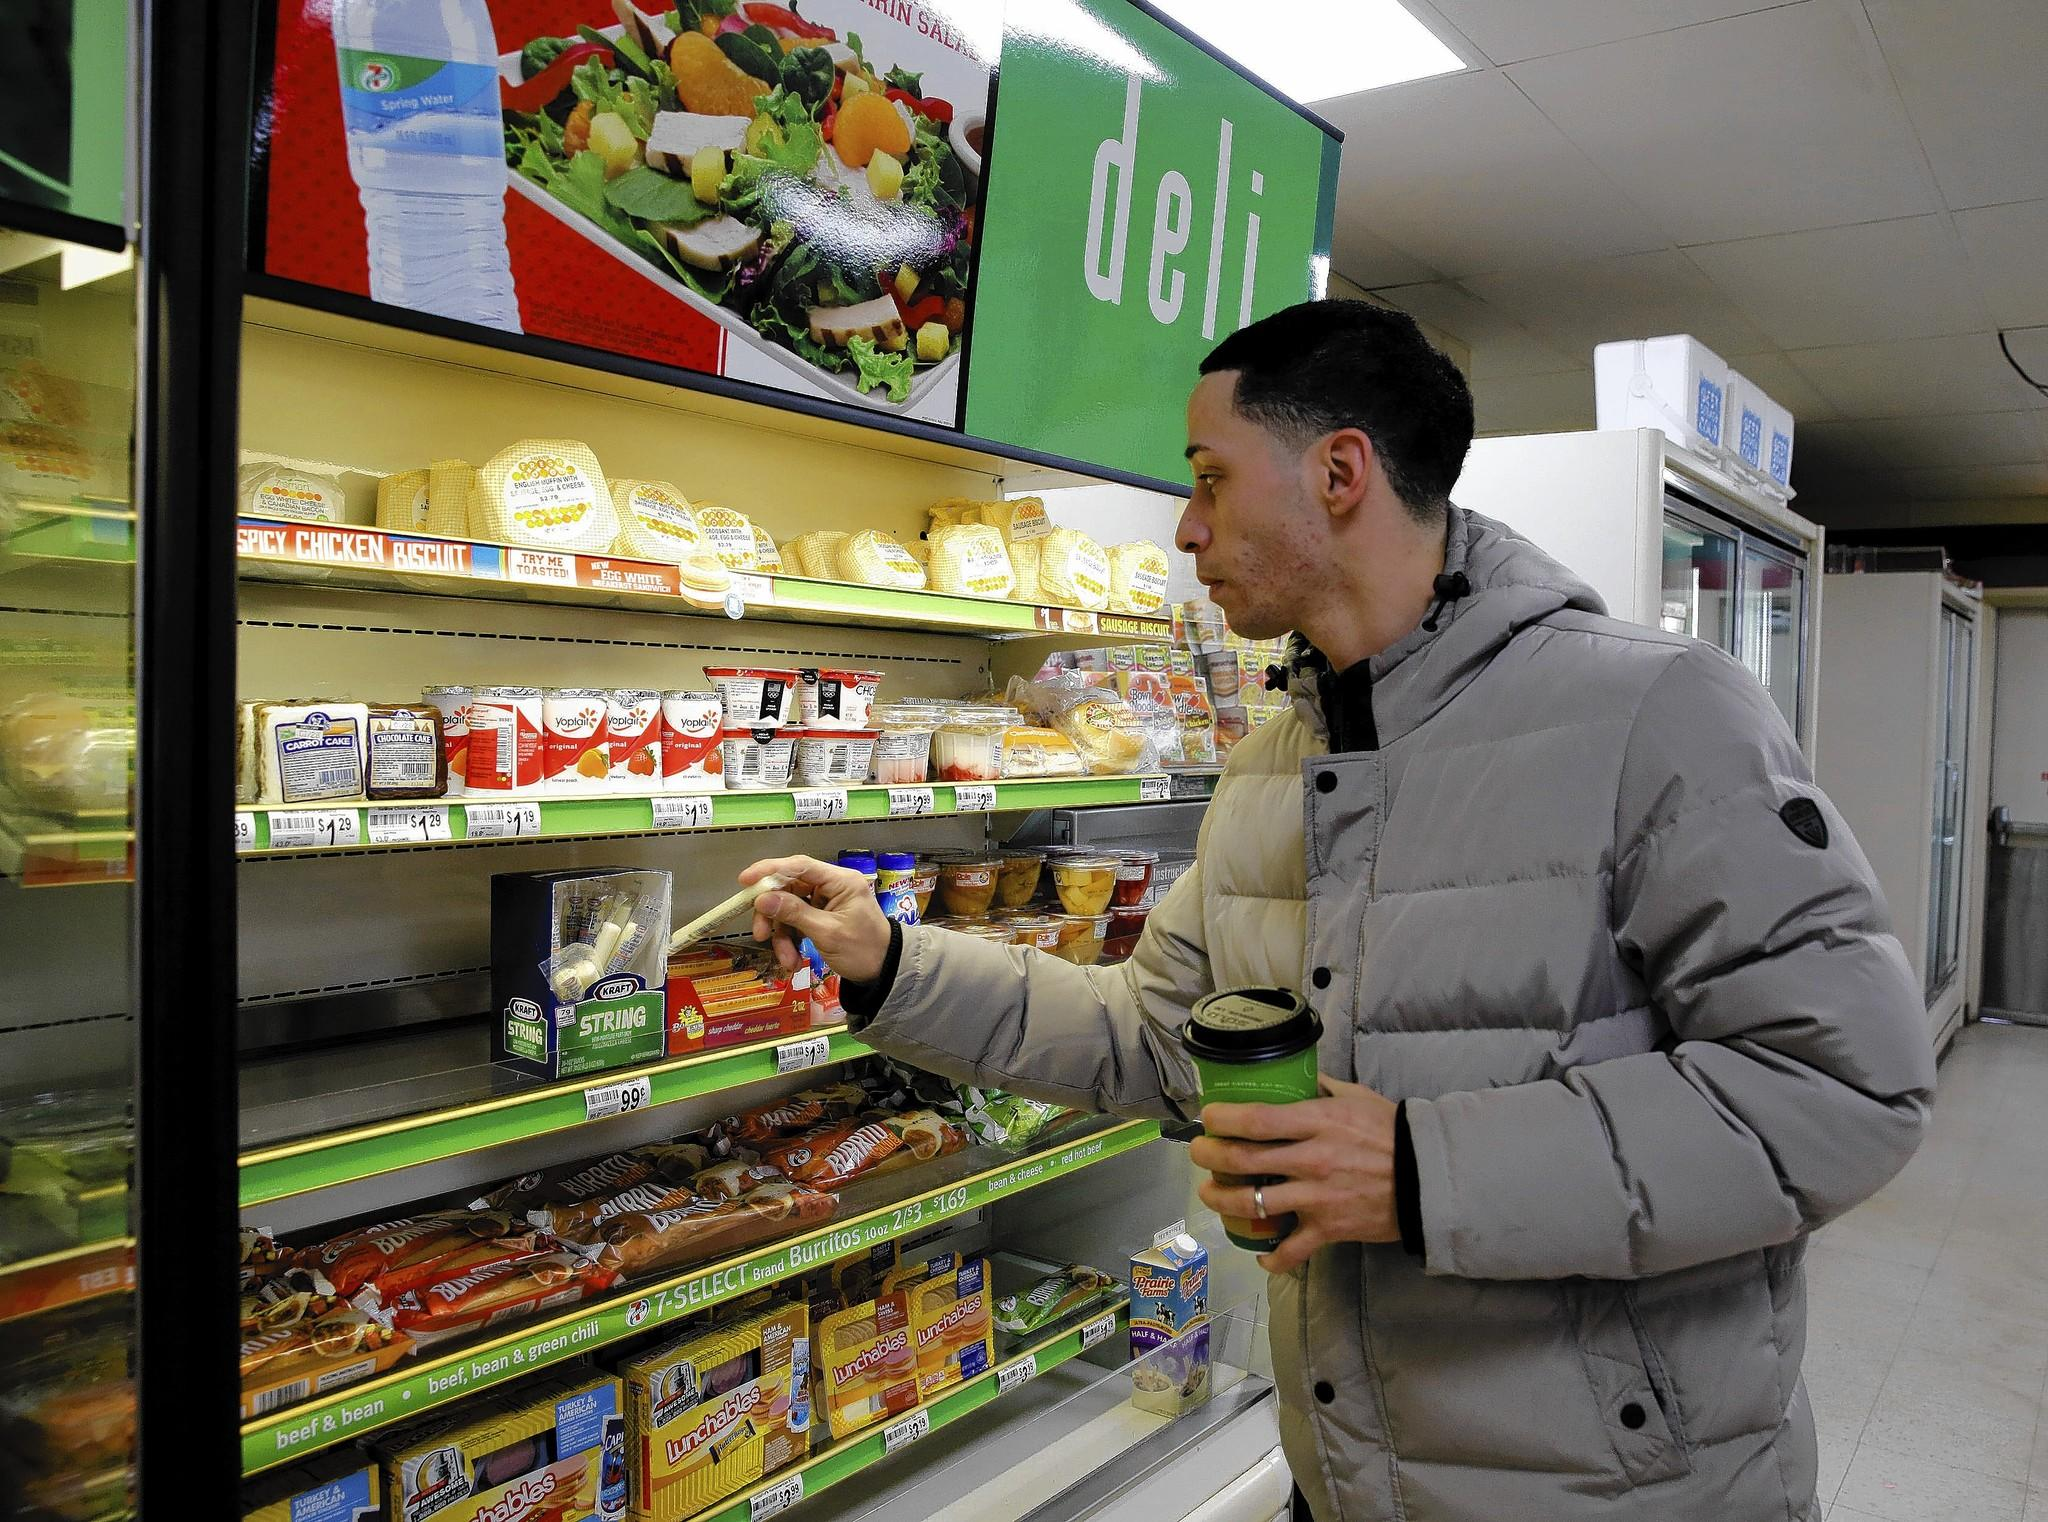 A customer selects string cheese to go with his coffee last week at a 7-Eleven on Fullerton Avenue. The world's largest convenience store chain is increasing its fresh food offerings, including a push toward more healthy snacks.